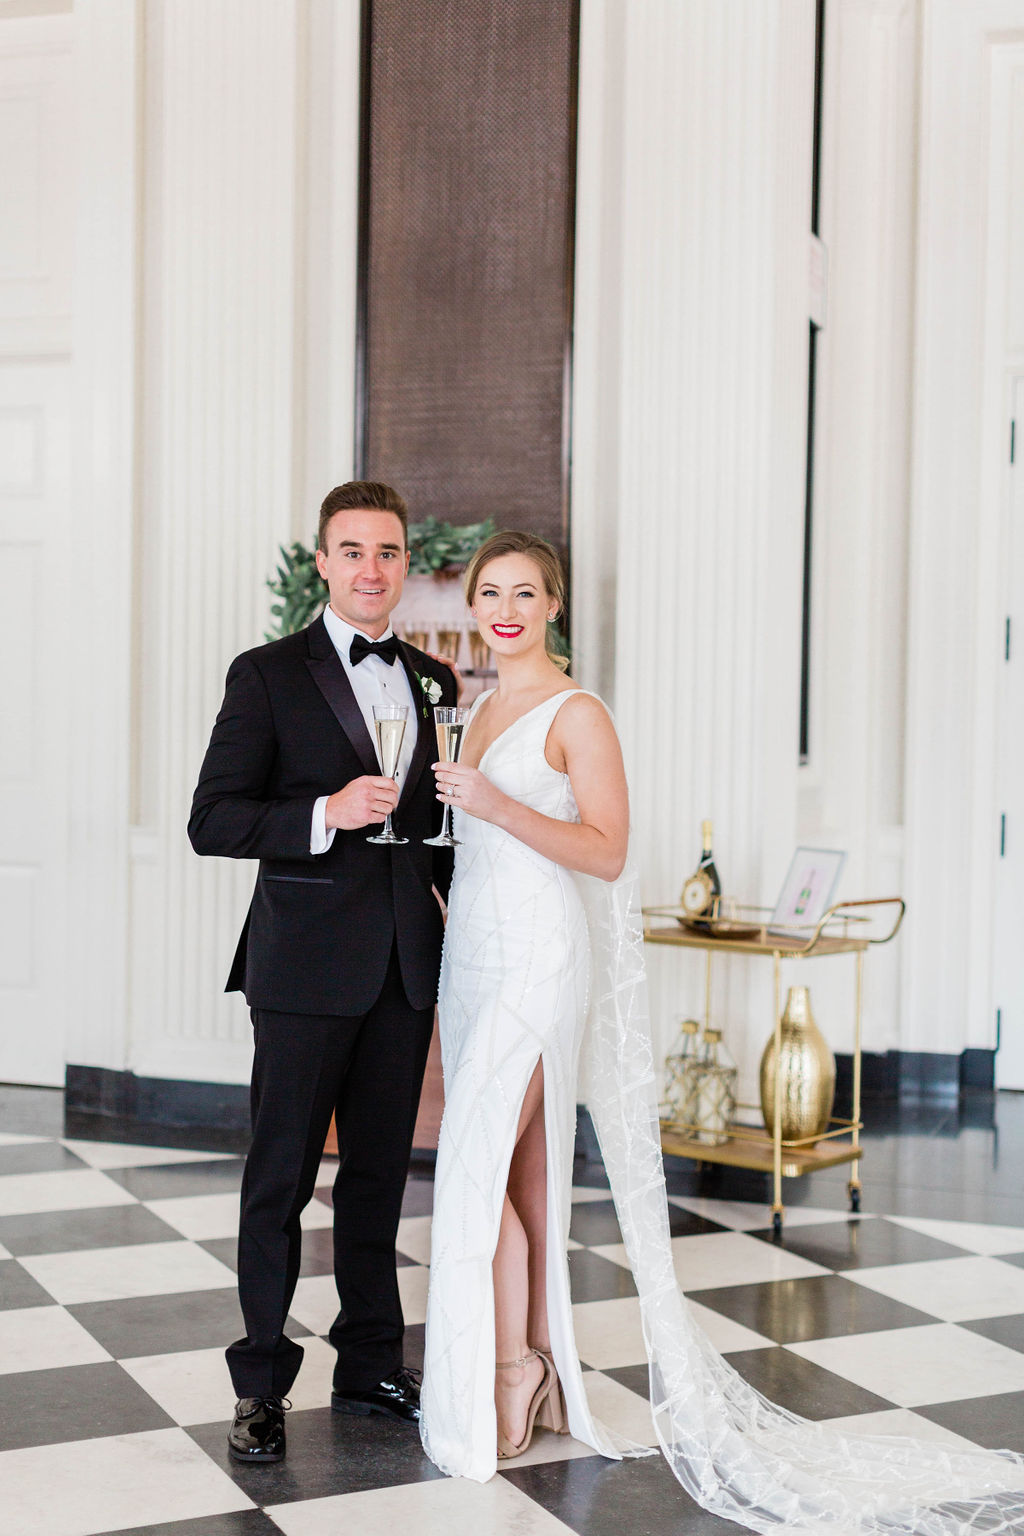 Champagne Wall |  | Chicago History Museum | Black and White Wedding | Black Tie Wedding | Your Day by MK | Chicago Wedding Planner |